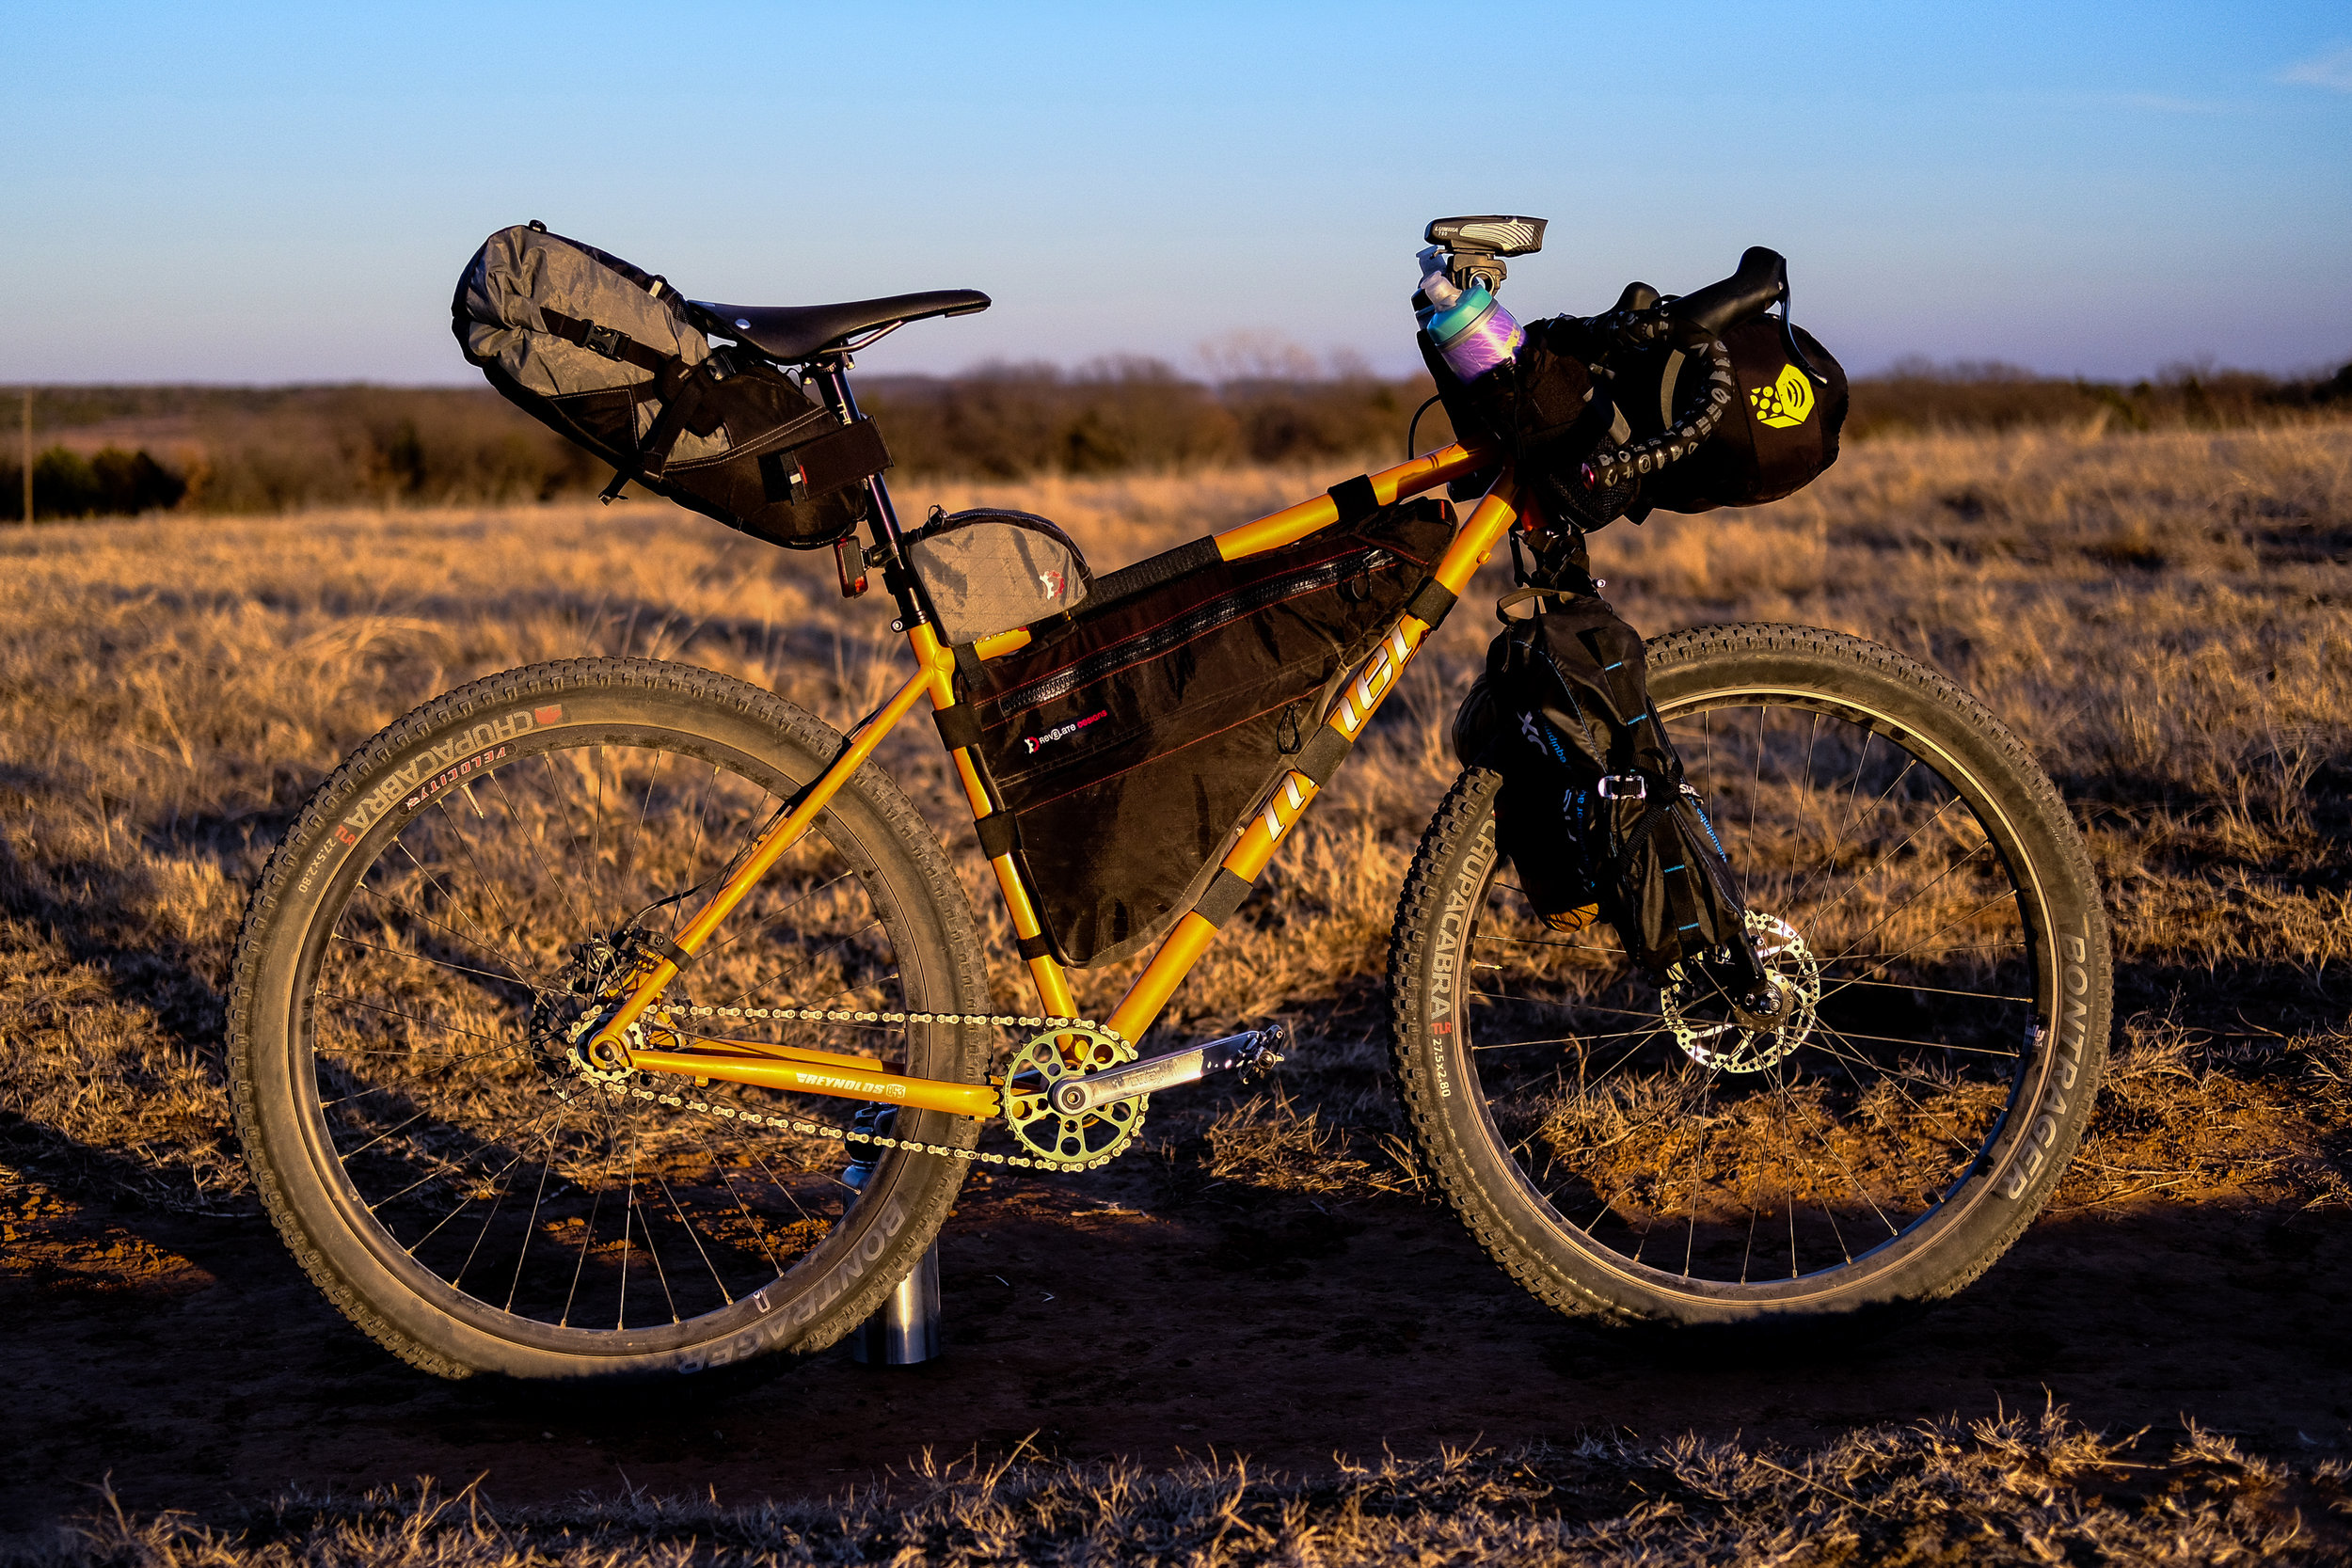 Tyler Siems' MTB Abomination: Glamping Edition. Give him a follow @getwide!